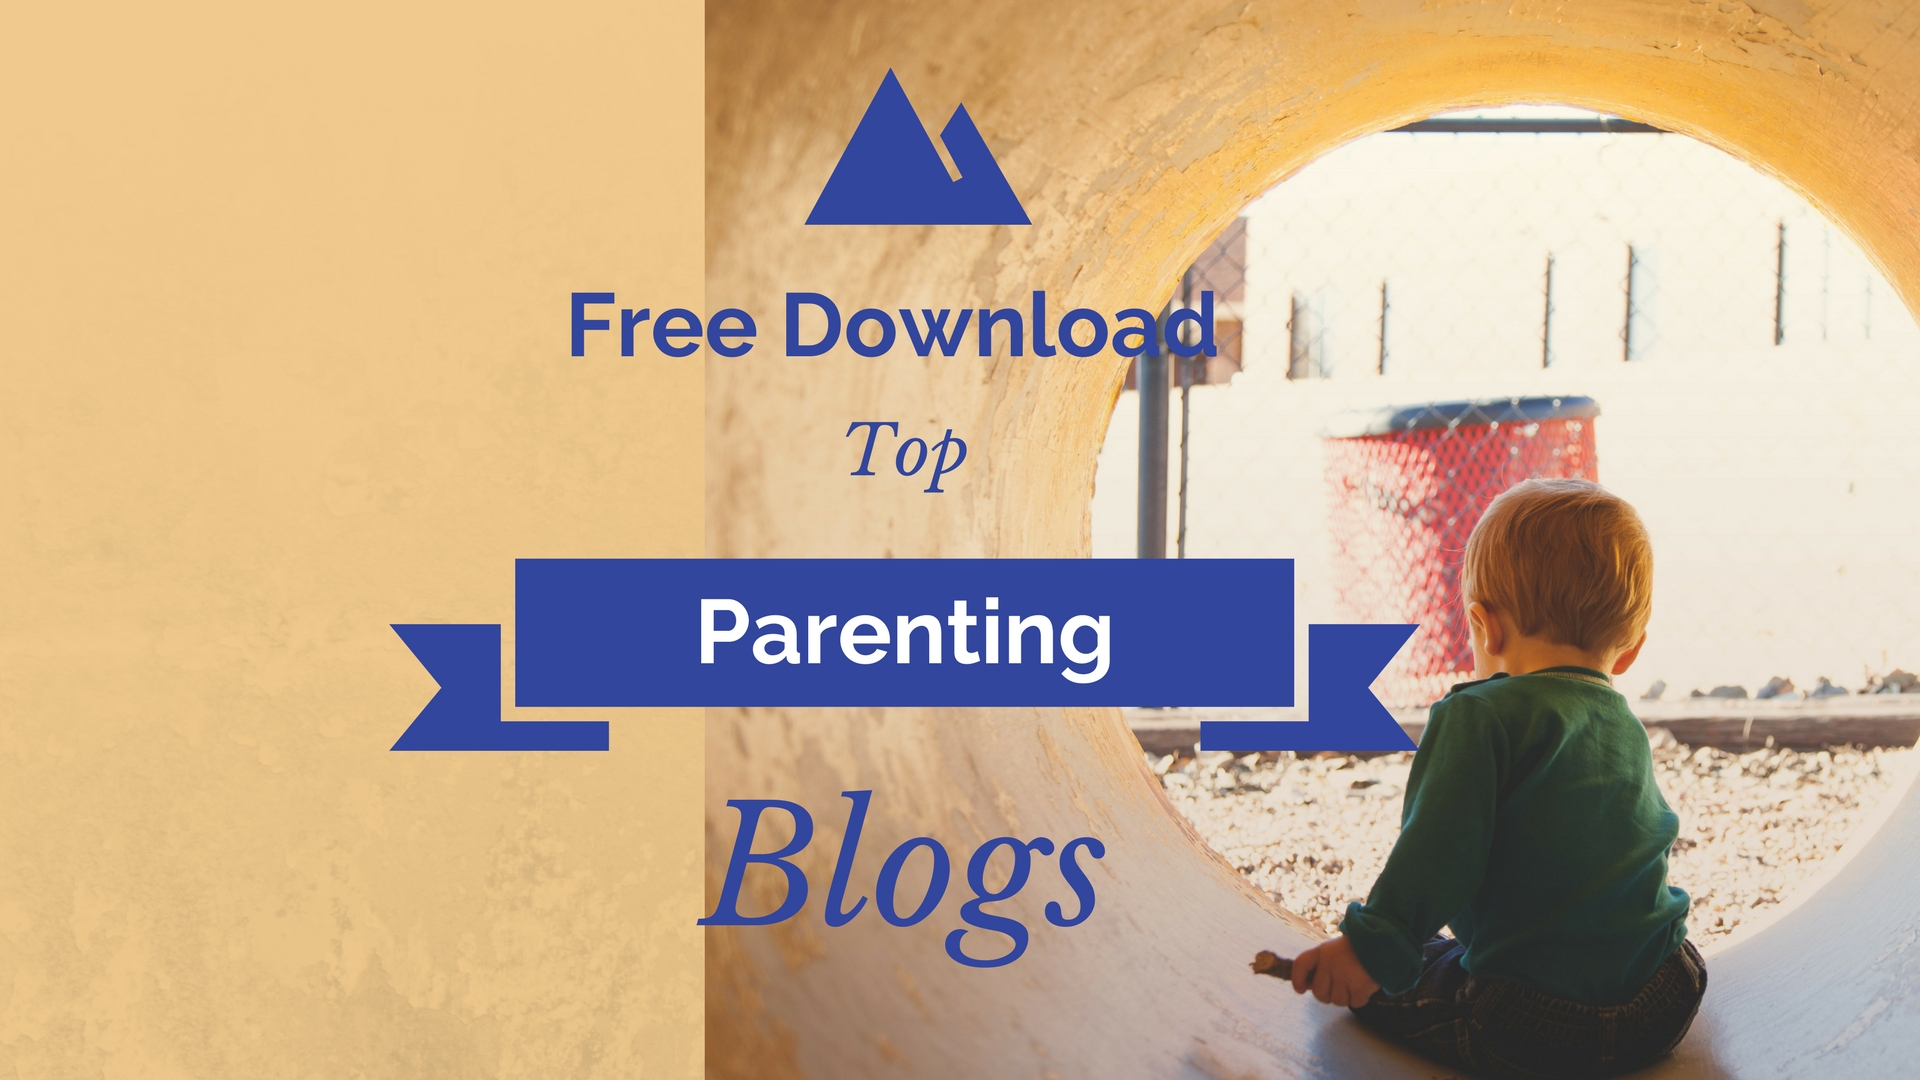 (Free Download!) List of Top Parenting & Family Influencers